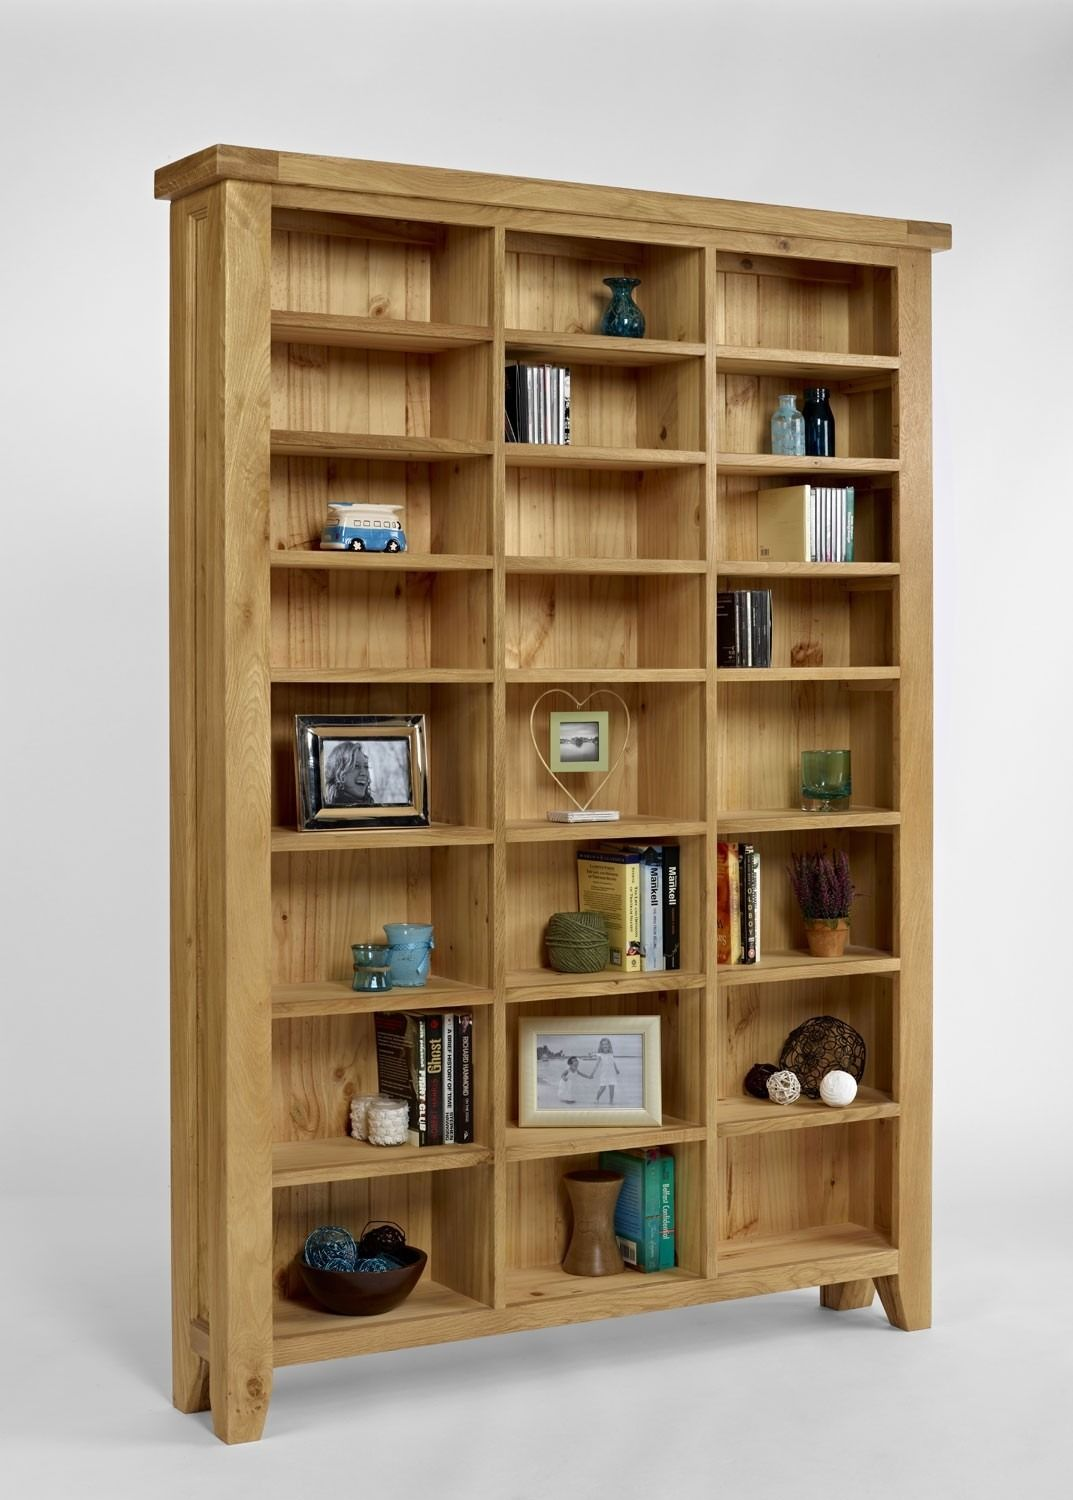 Elegance oak large cddvd storage unit bookcases shelving elegance oak large cddvd storage unit eventshaper